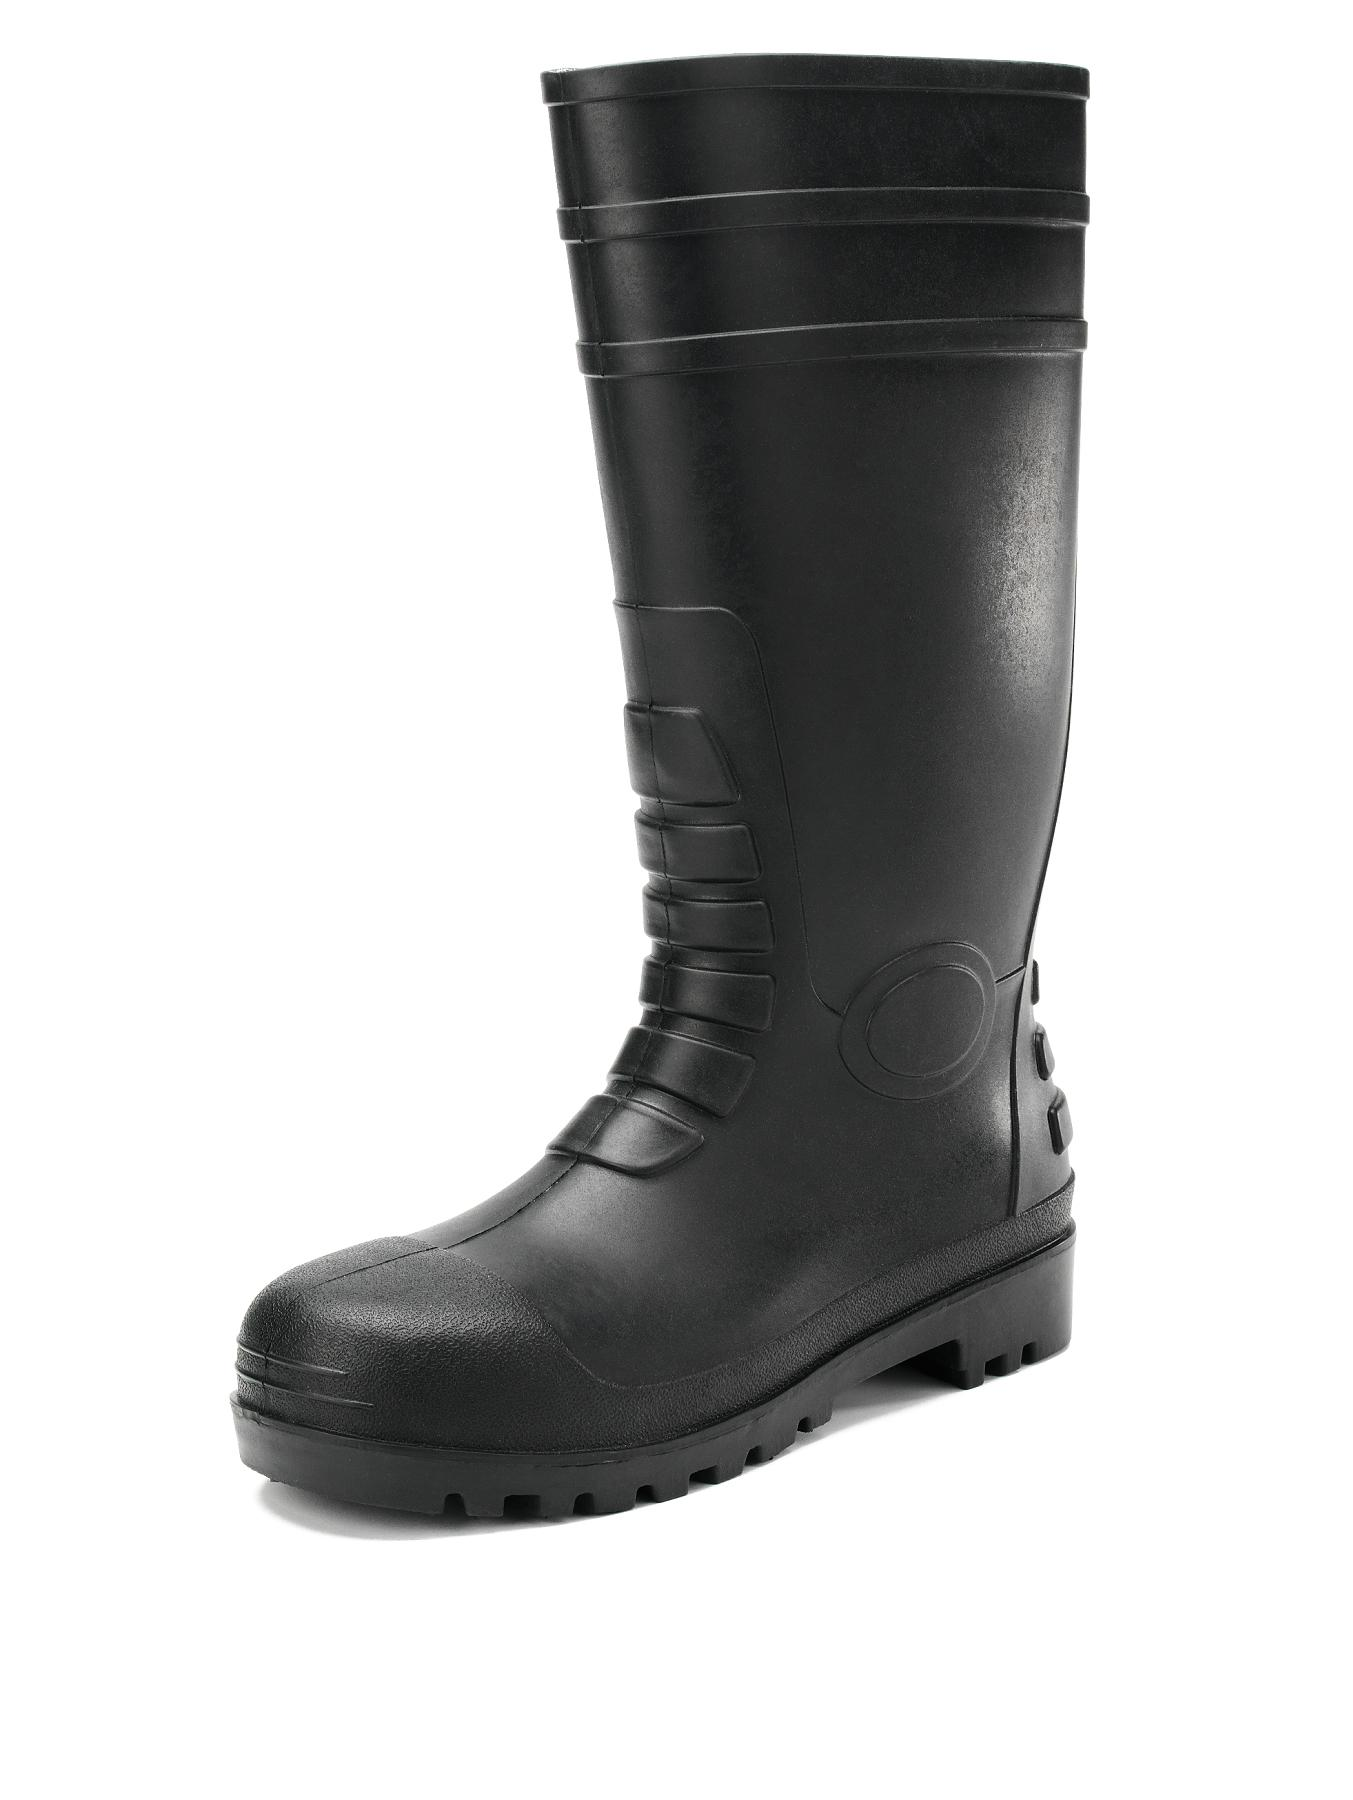 S5 Wellington Mens Safety Boots, Black